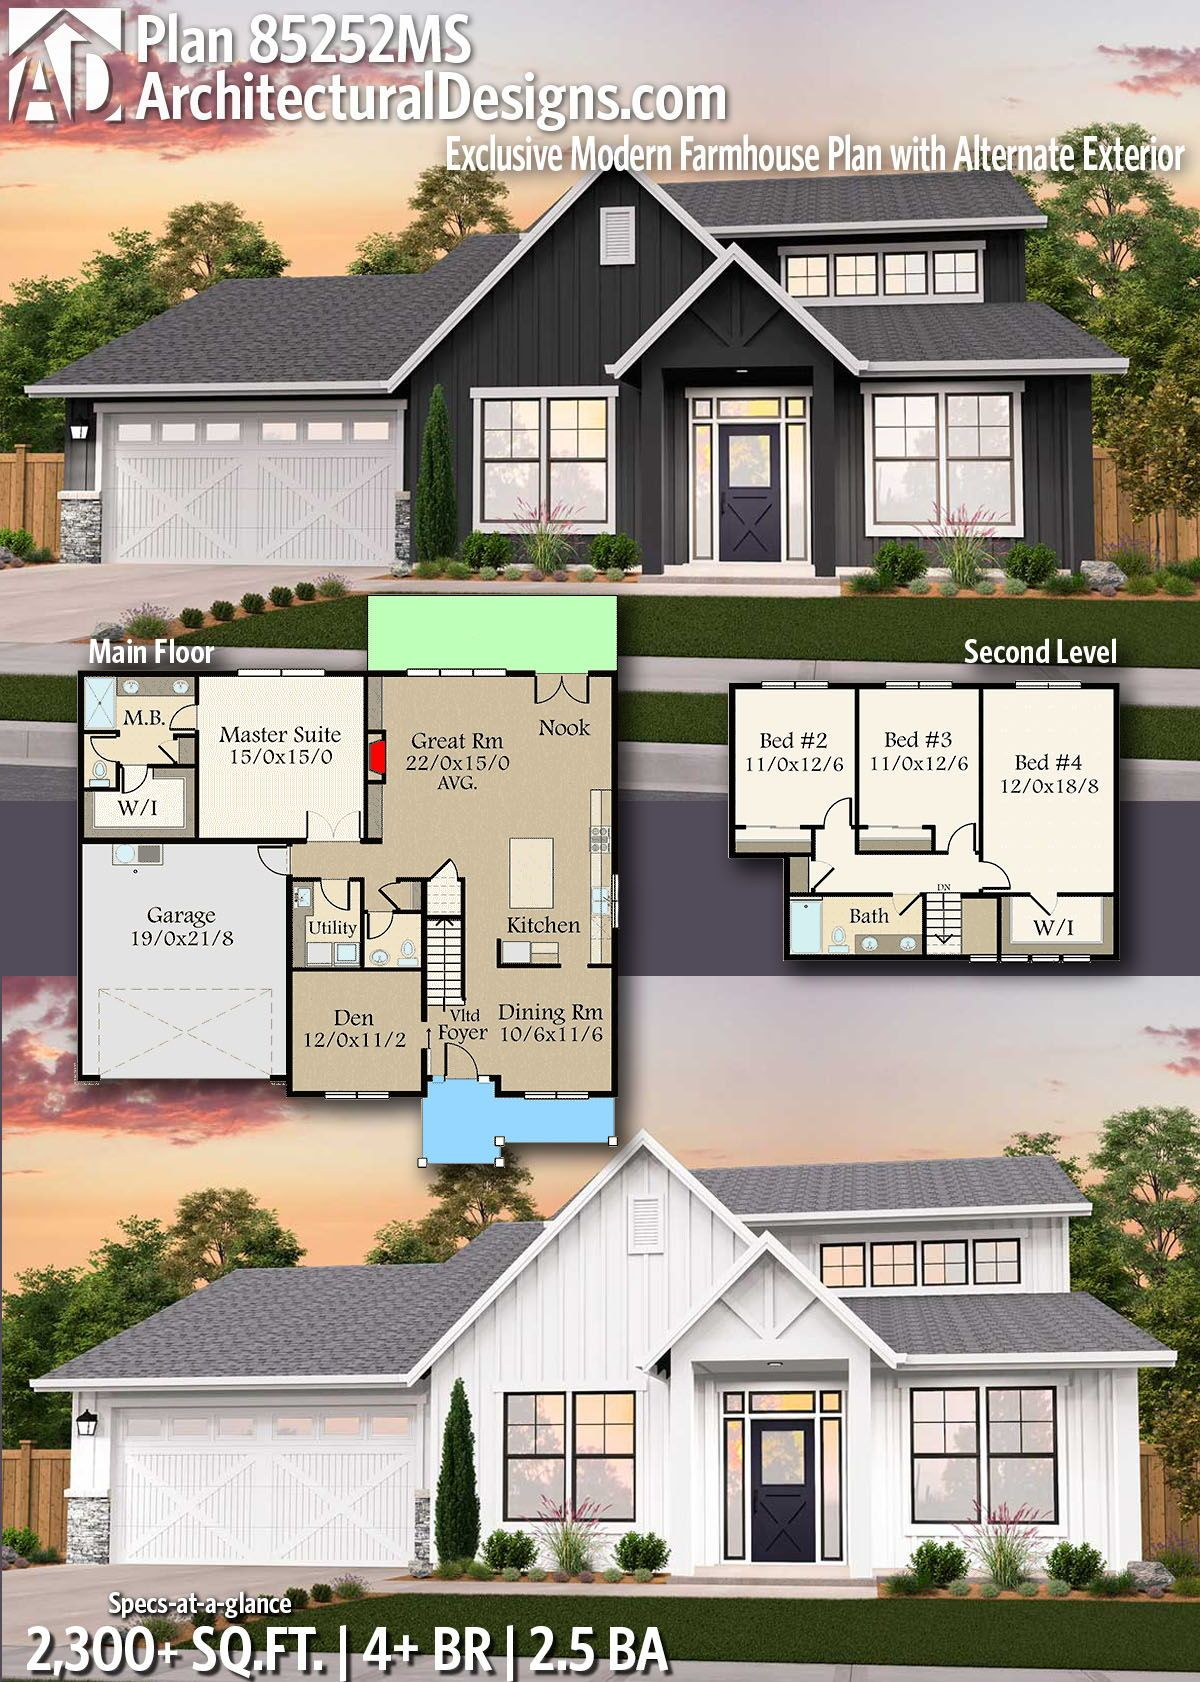 Plan 85252ms Exclusive New American House Plan With Alternate Exterior American Houses Country House Plans House Blueprints